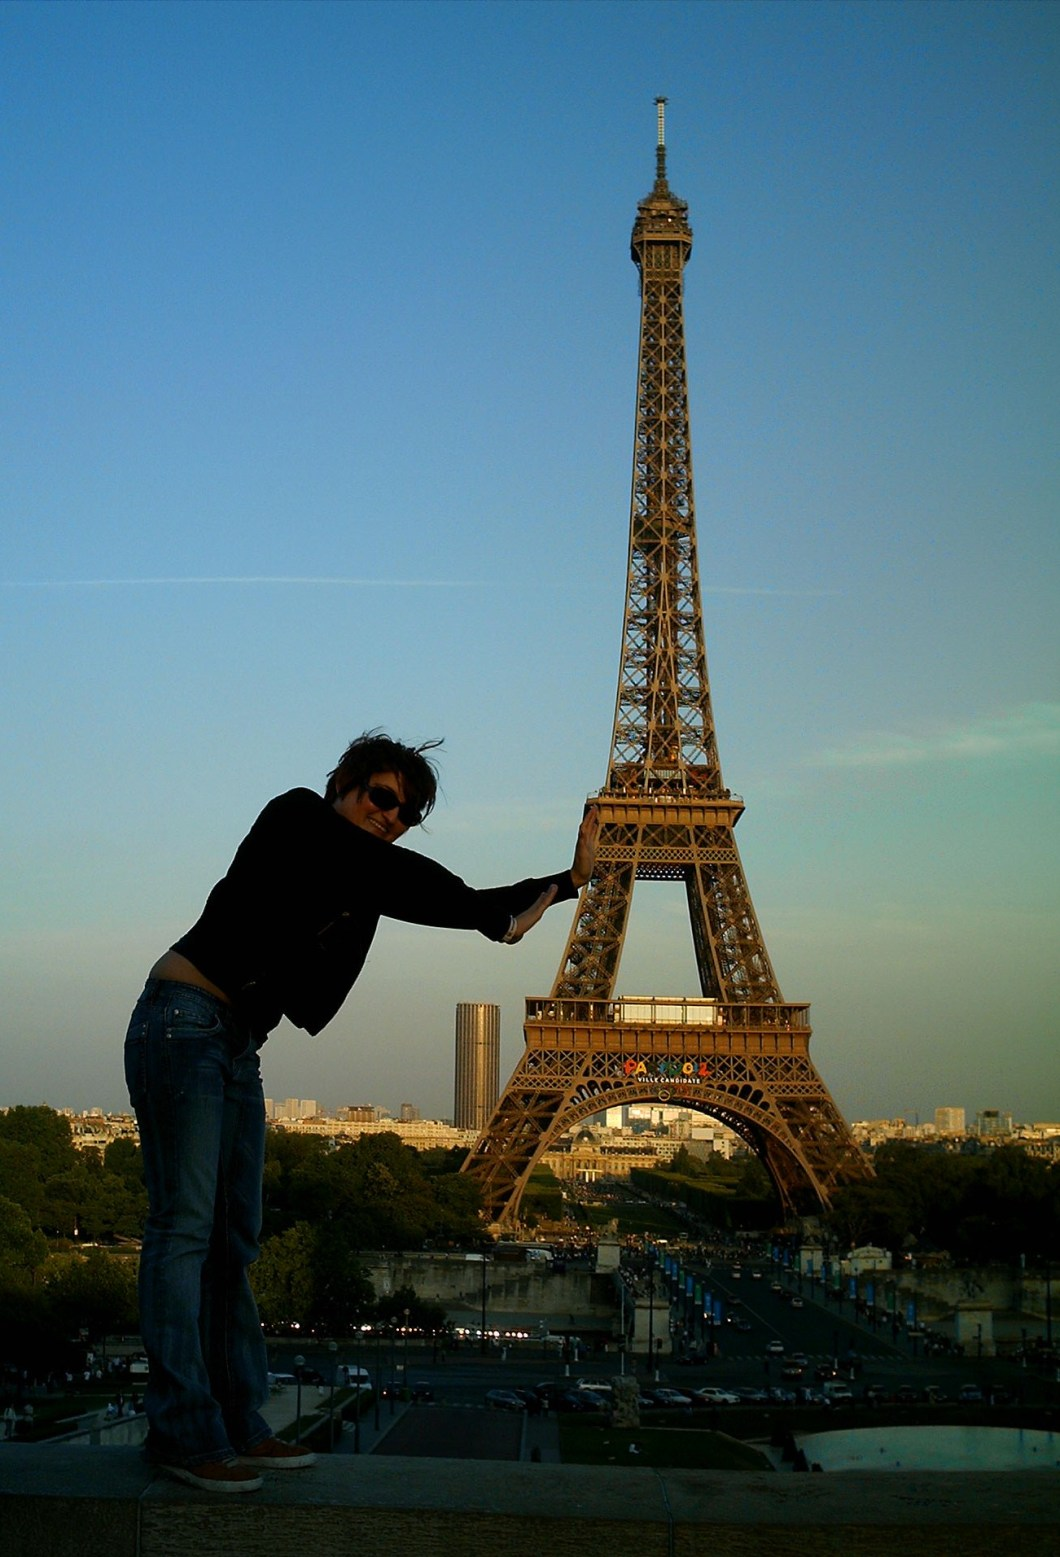 Me in Paris, France